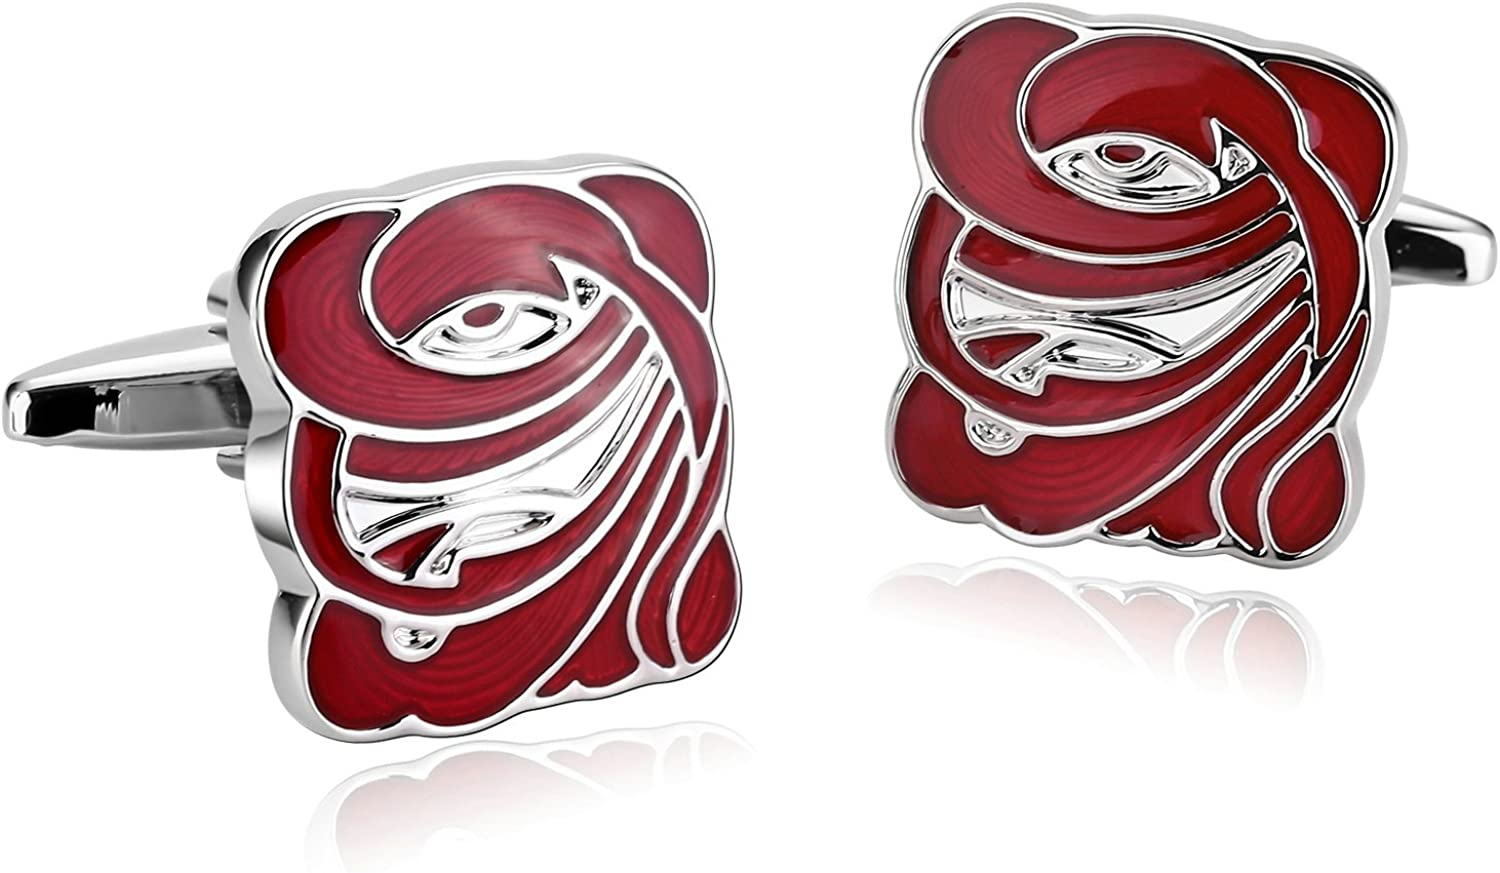 AMDXD Cuff Links Stainless Steel Men Whit Cufflinks for Wedding Shipping included Ranking TOP15